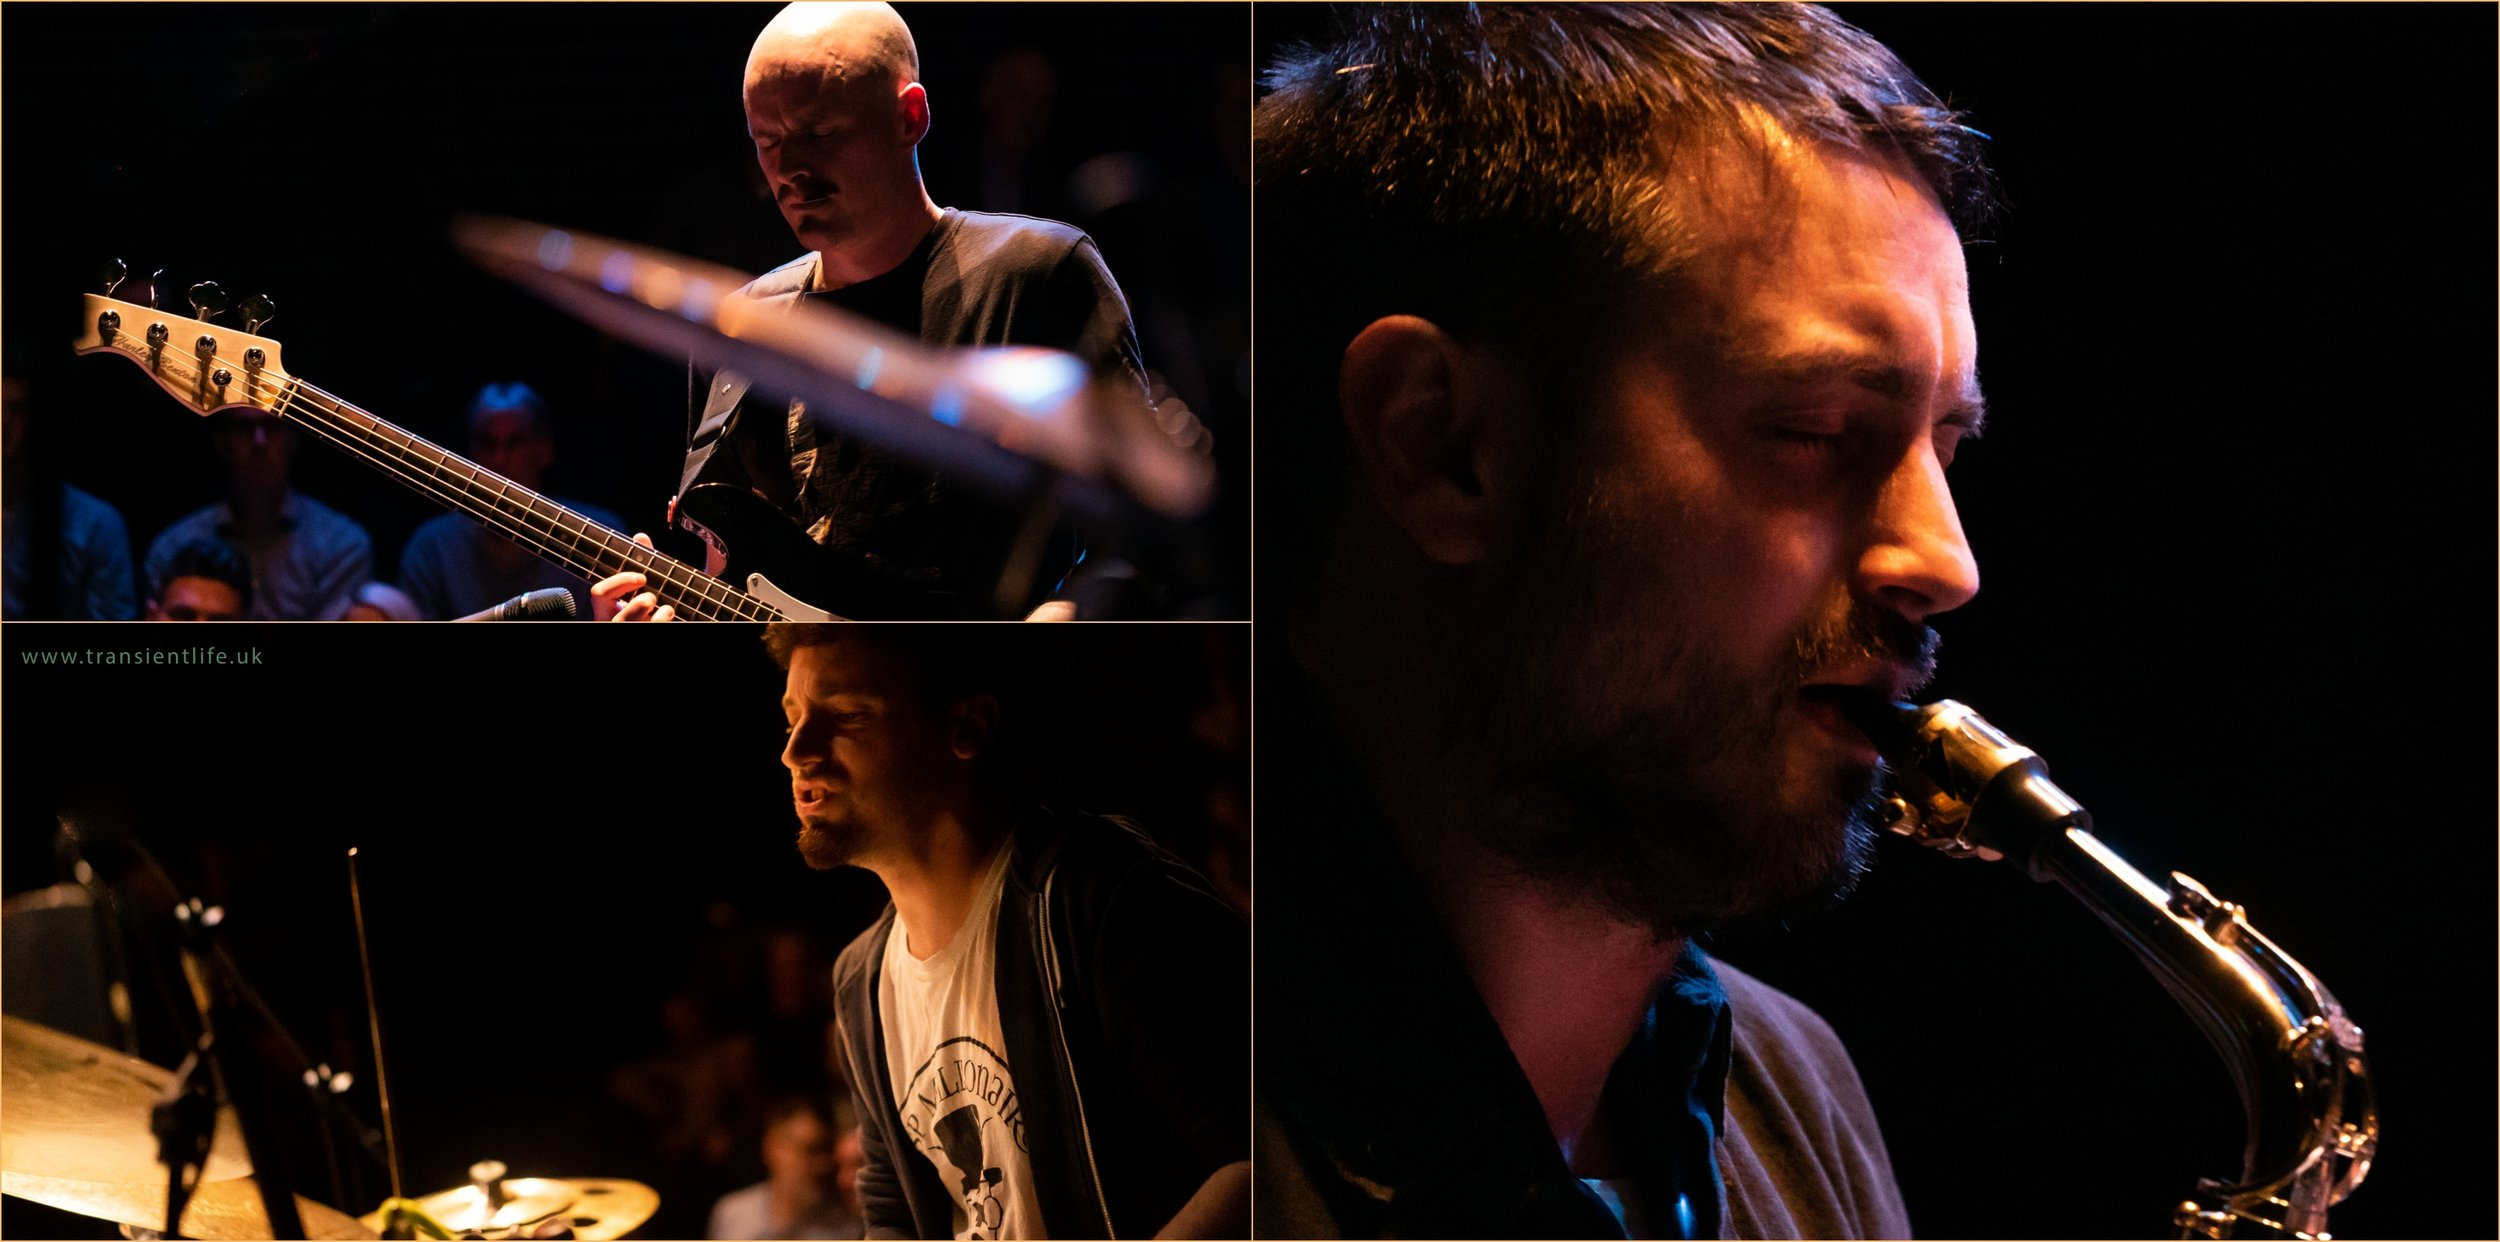 From top left, Chris Sharkey (bass), James Mainwaring (alto sax) and Luke Reddin-Williams (drums)